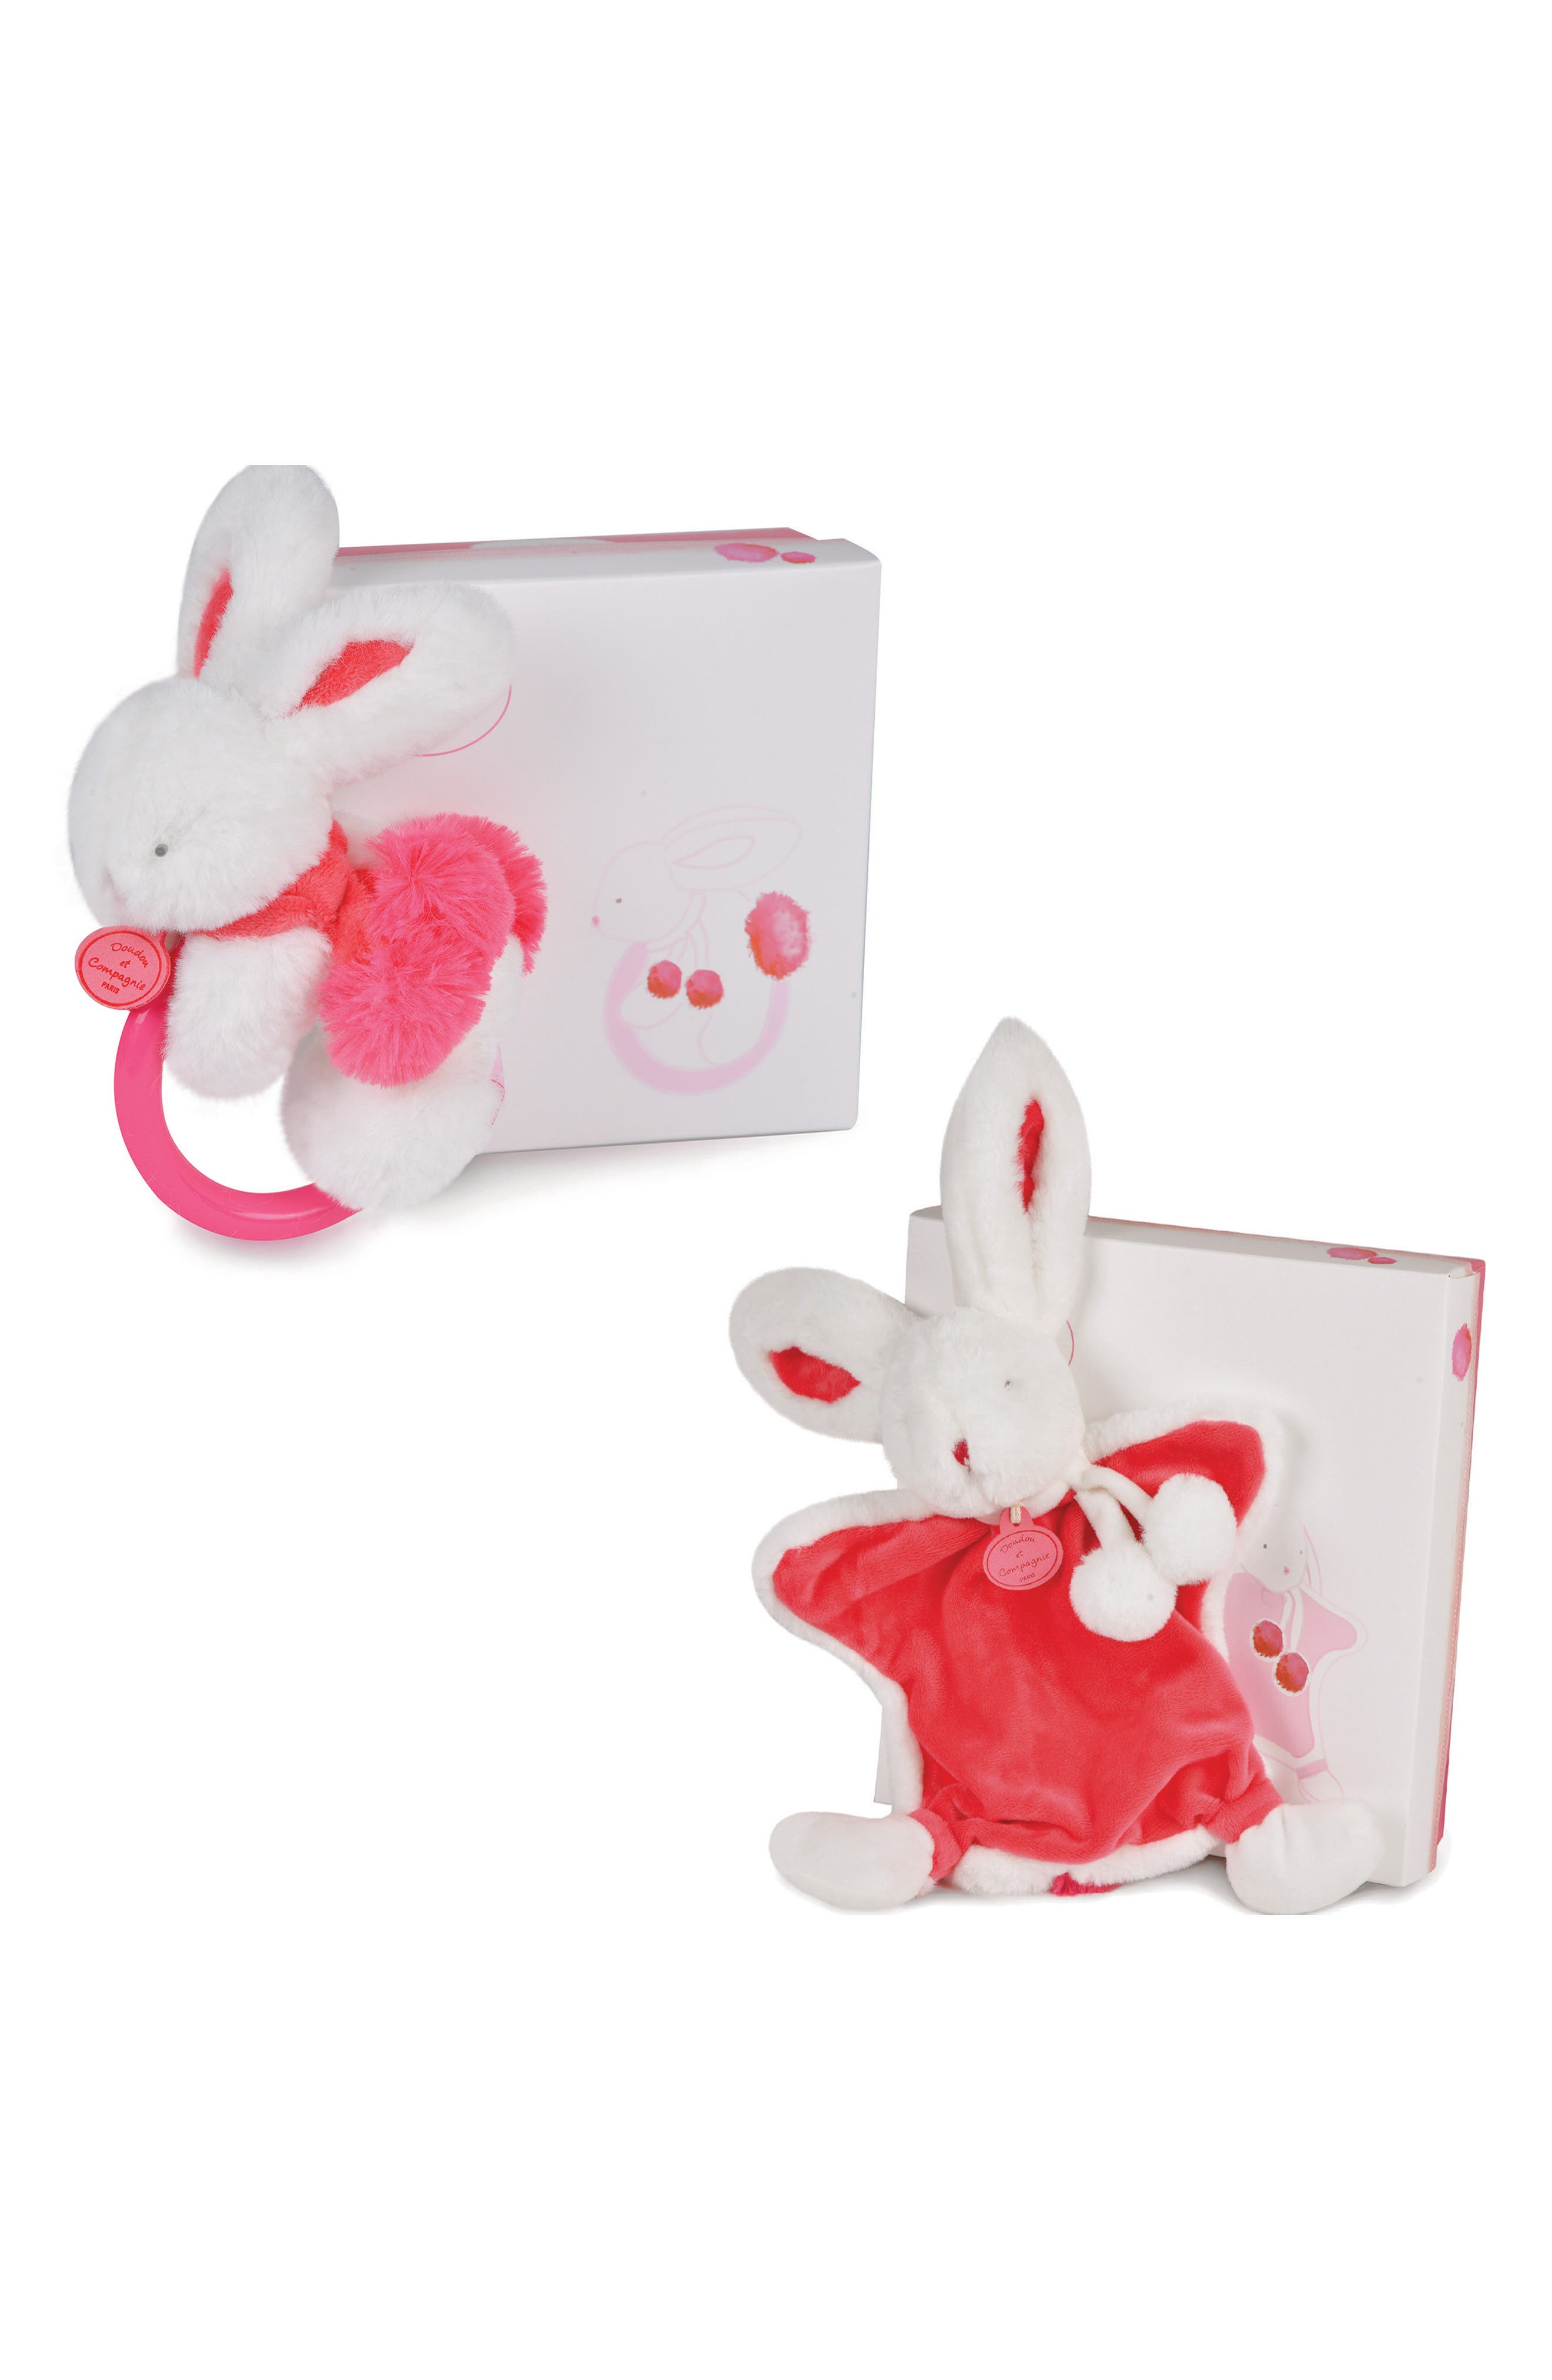 Alternate Image 1 Selected - Doudou et Compagnie Strawberry Pink Bunny Rattle & Lovie Blanket Gift Set (Baby)